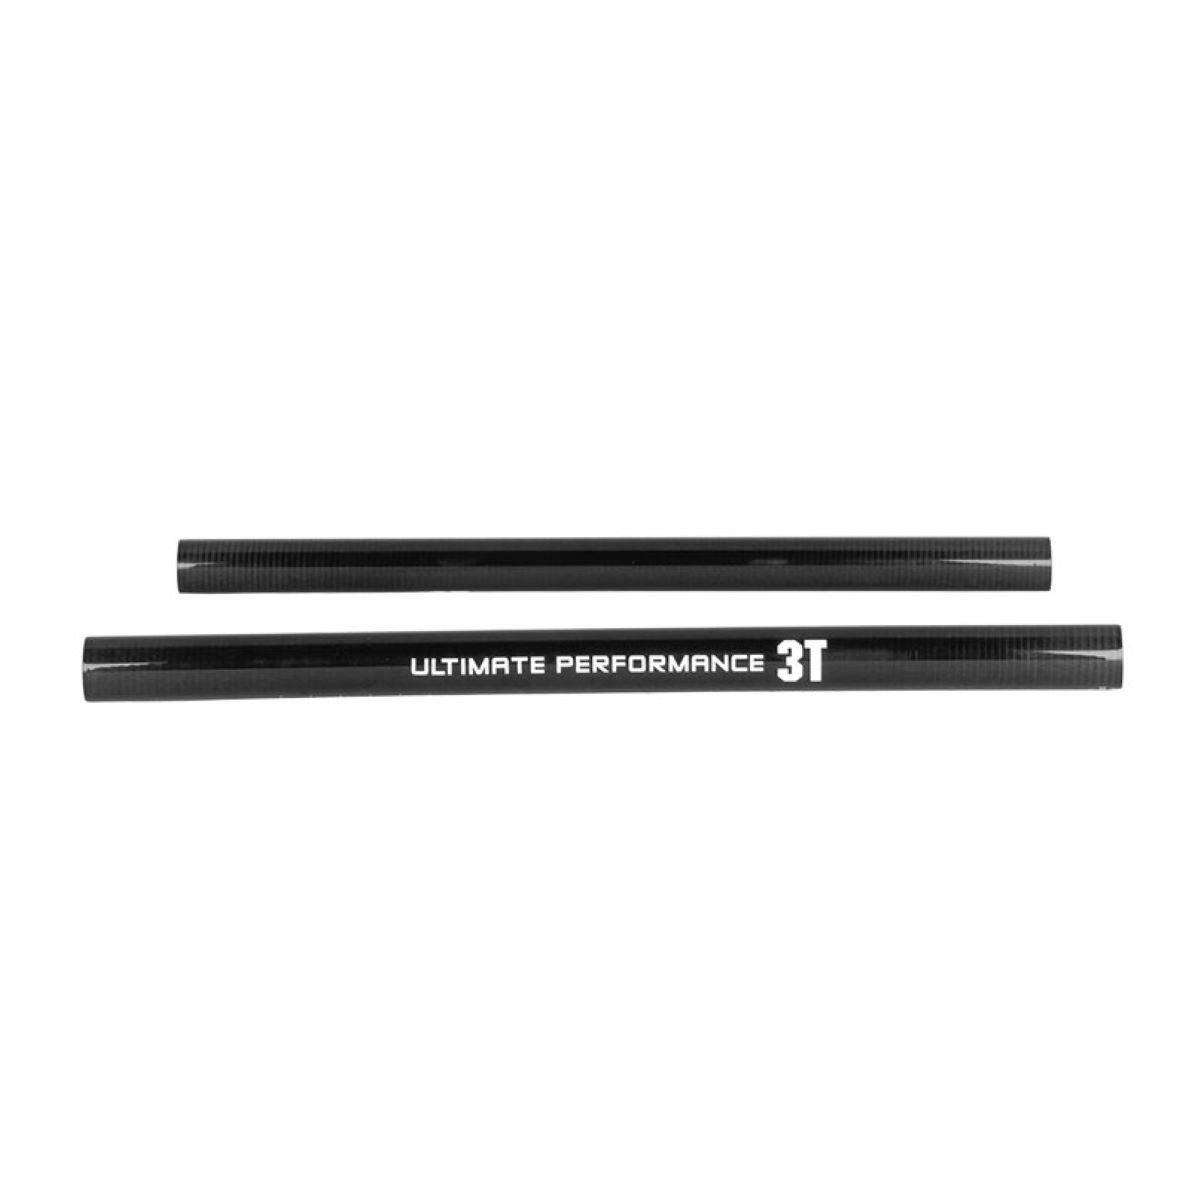 Extensions 3T Team Straight Aero (kit clip-on, carbone) - Taille unique Carbone Prolongateurs de cintre